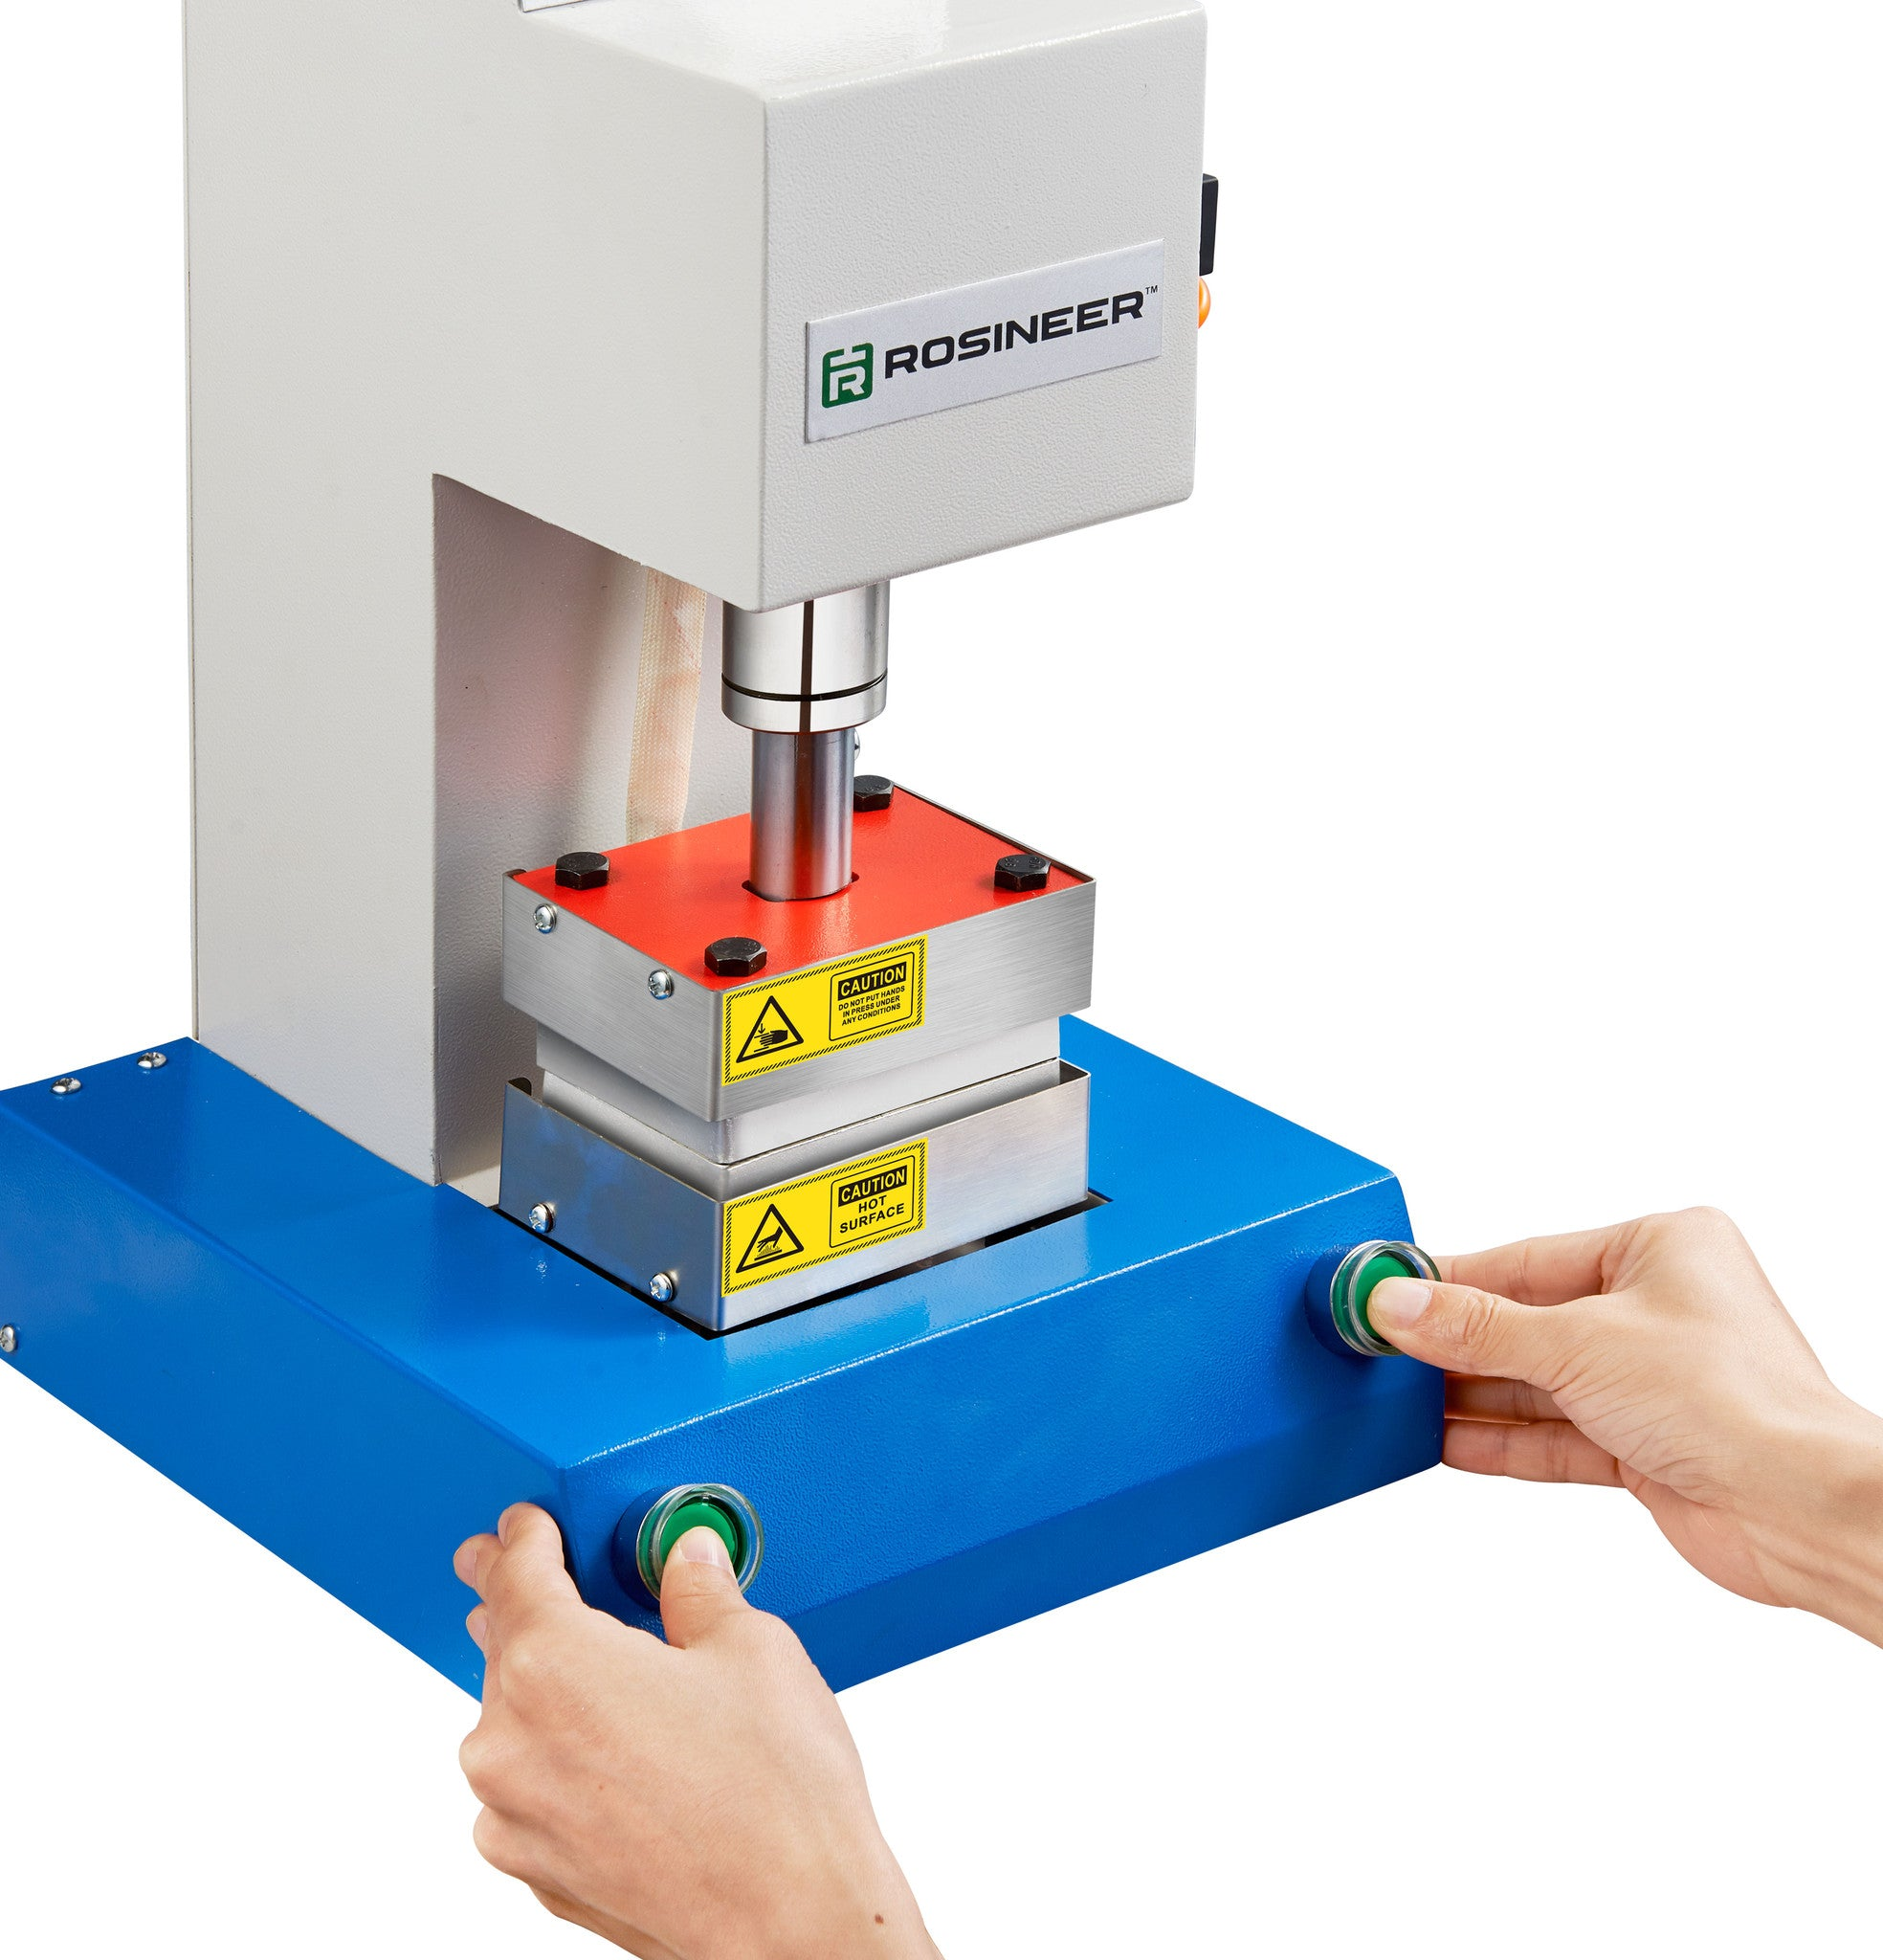 Rosineer RNR-PV1 Rosin Press - Safety Features